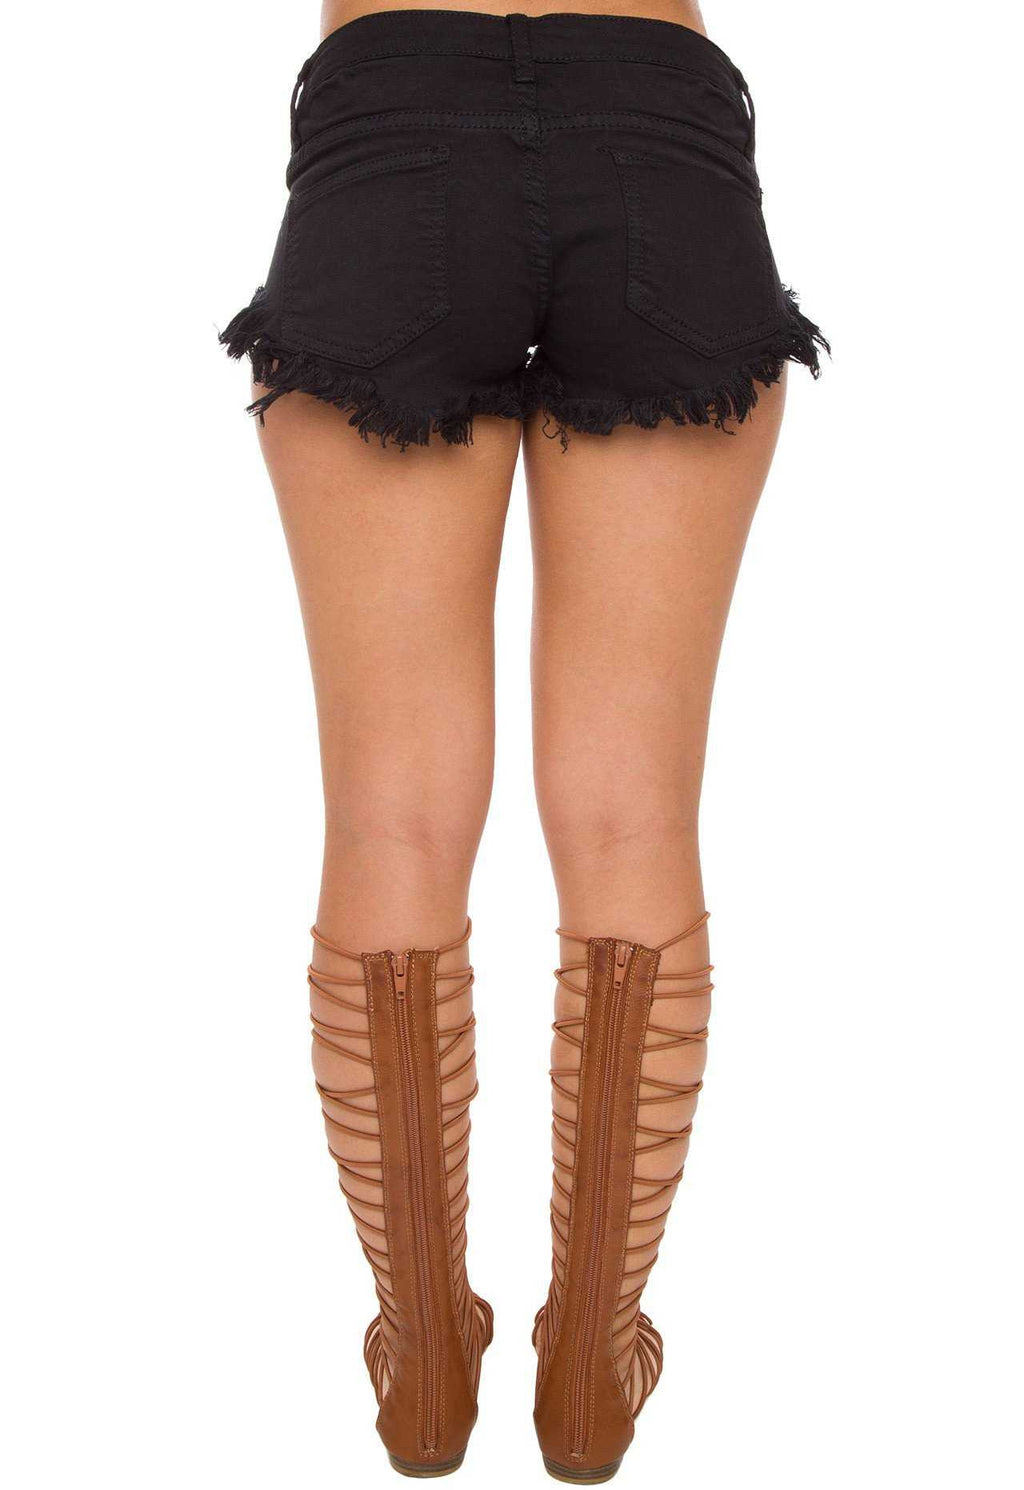 Shorts - Lark Distressed Shorts - Black